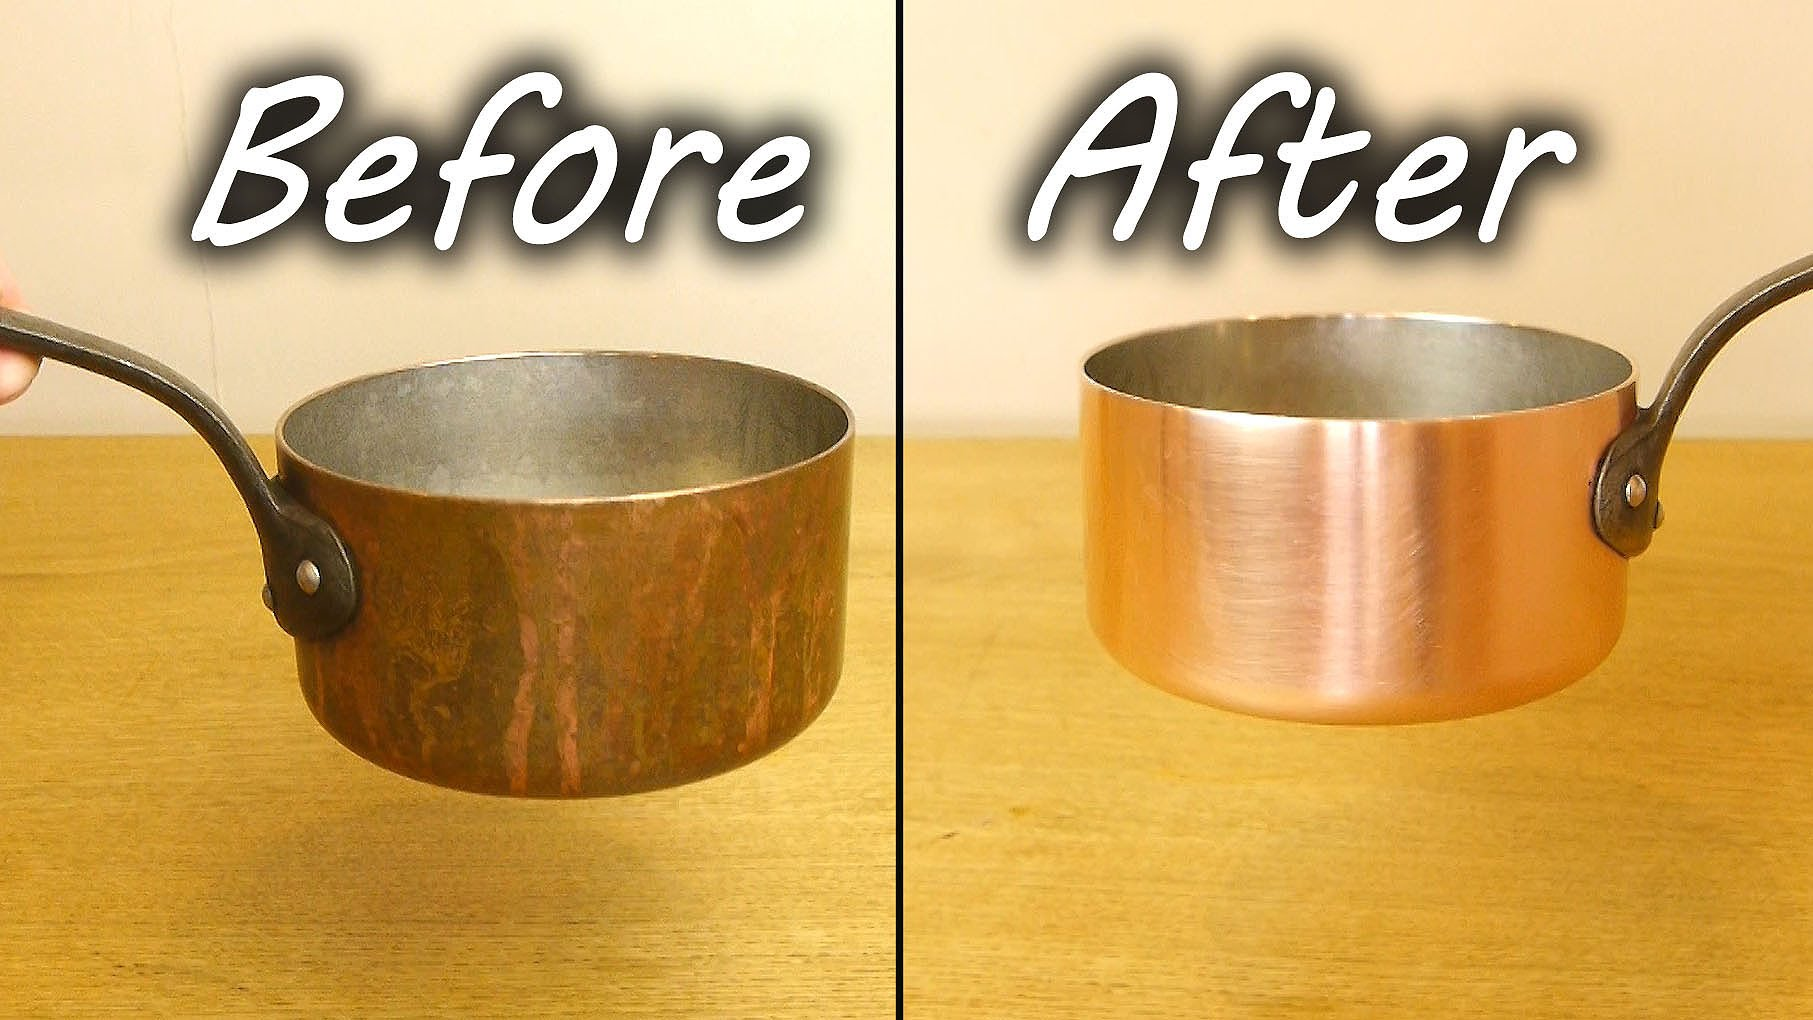 「生活小妙招:銅製品重新亮晶晶」- How to Clean a Copper Pan